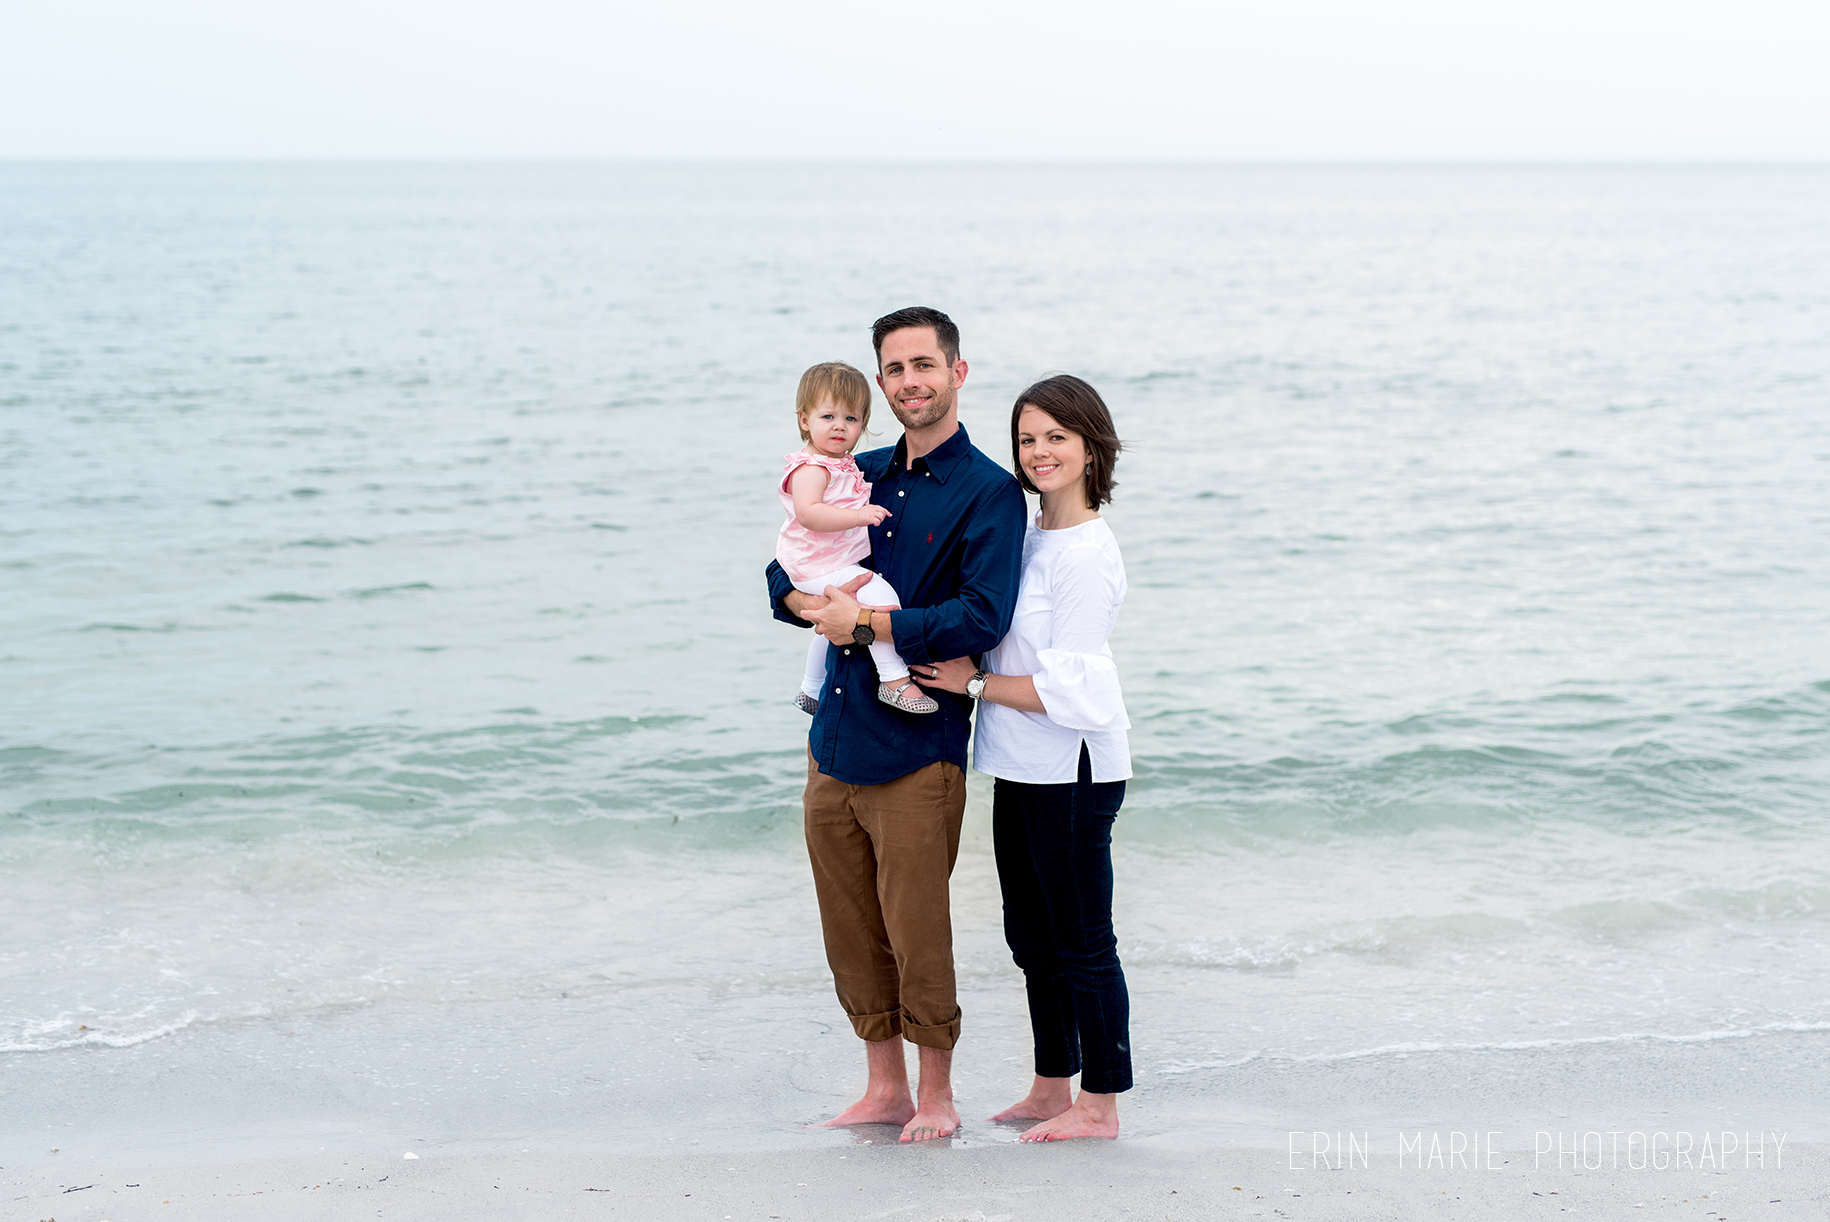 Sandkey_Beach_Family_Photographer_20.jpg